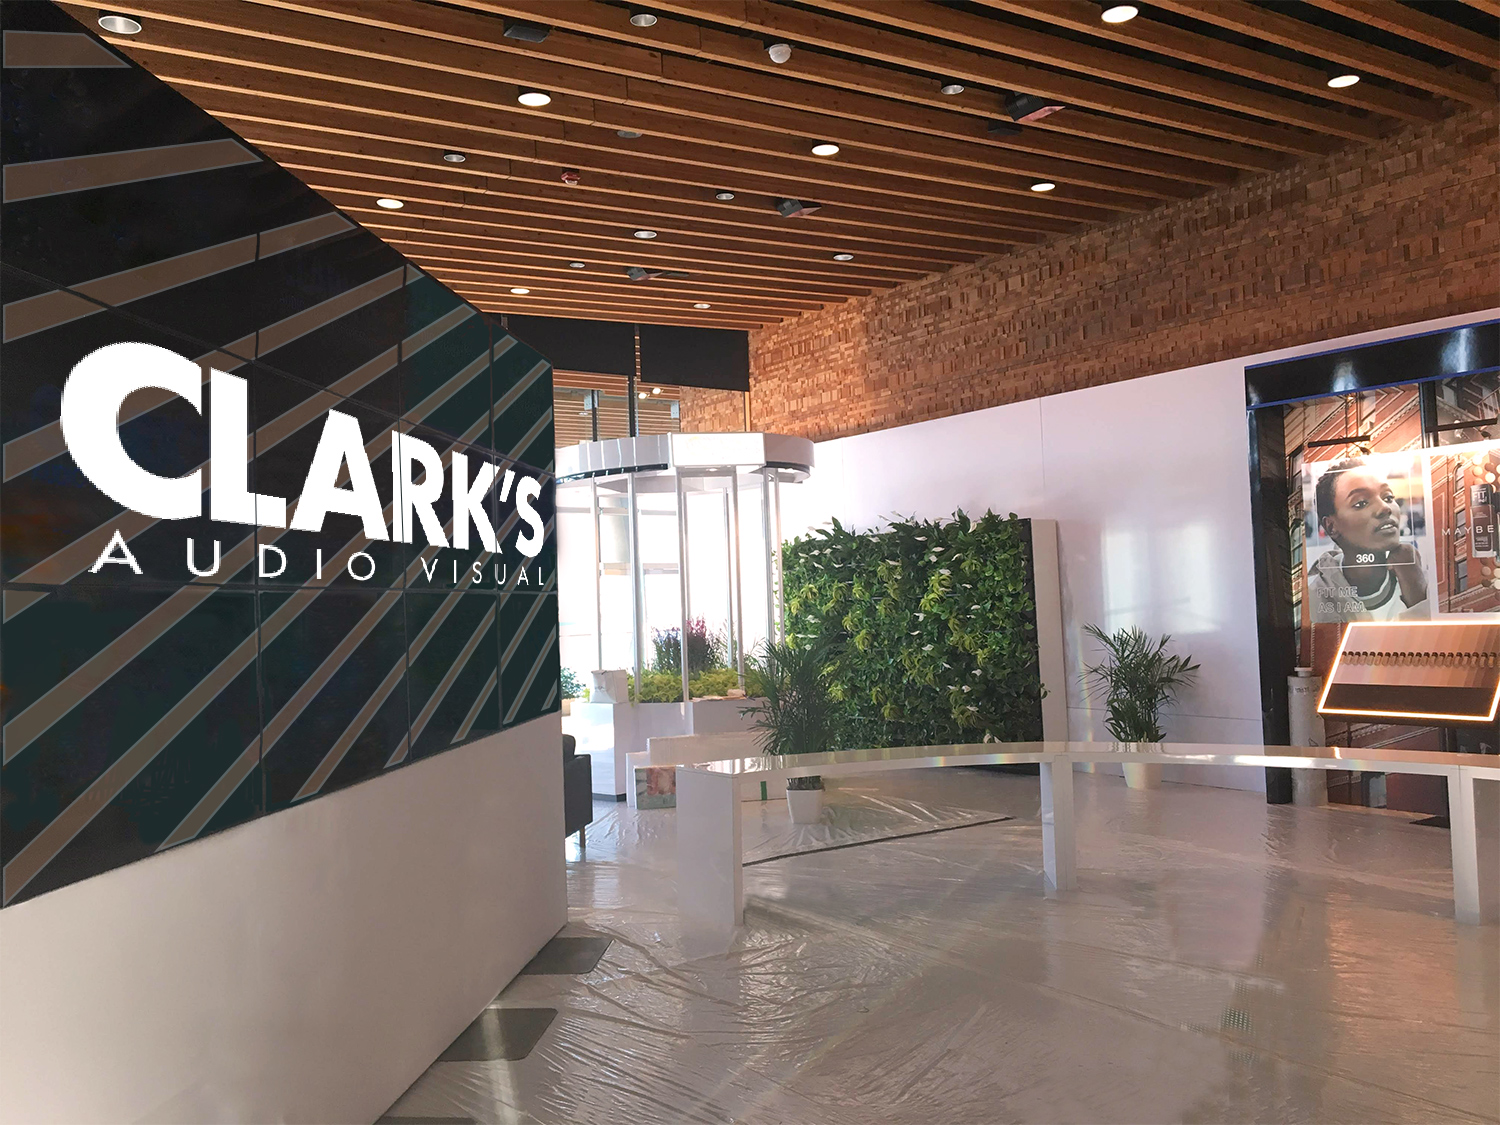 Clark's Audio Visual Production